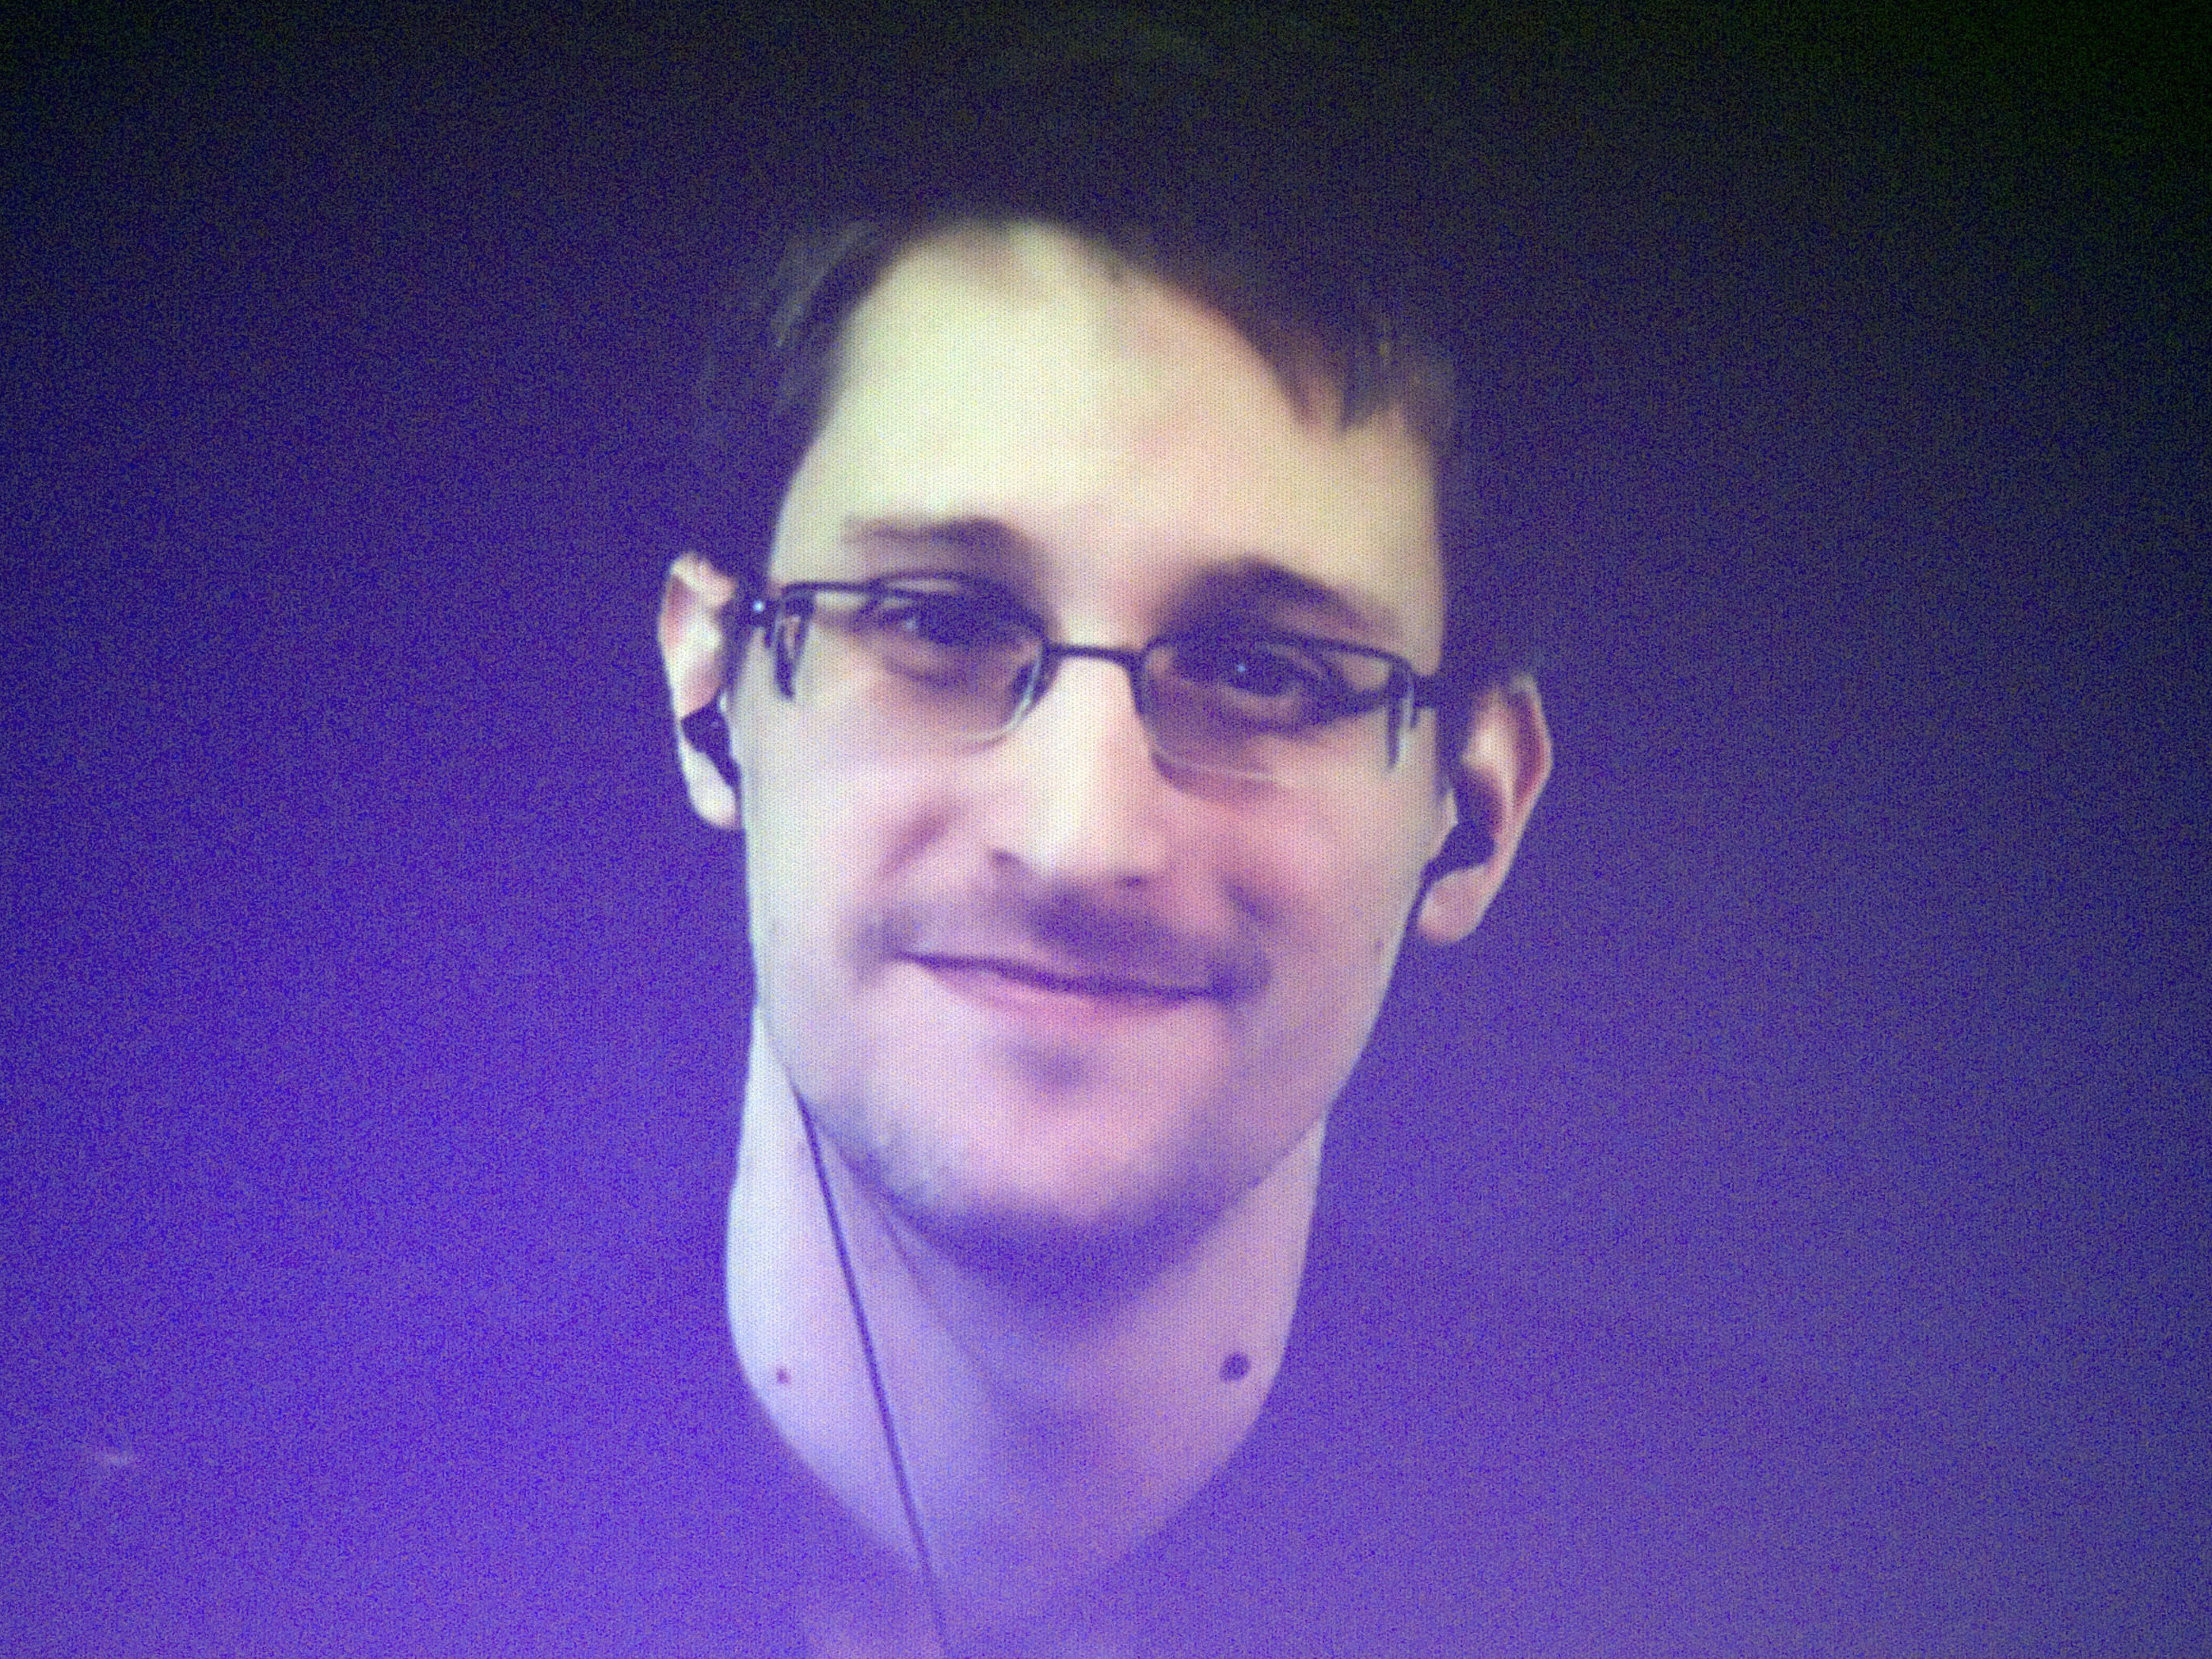 Snowden Plans to Vote in US Presidential Election While Exiled